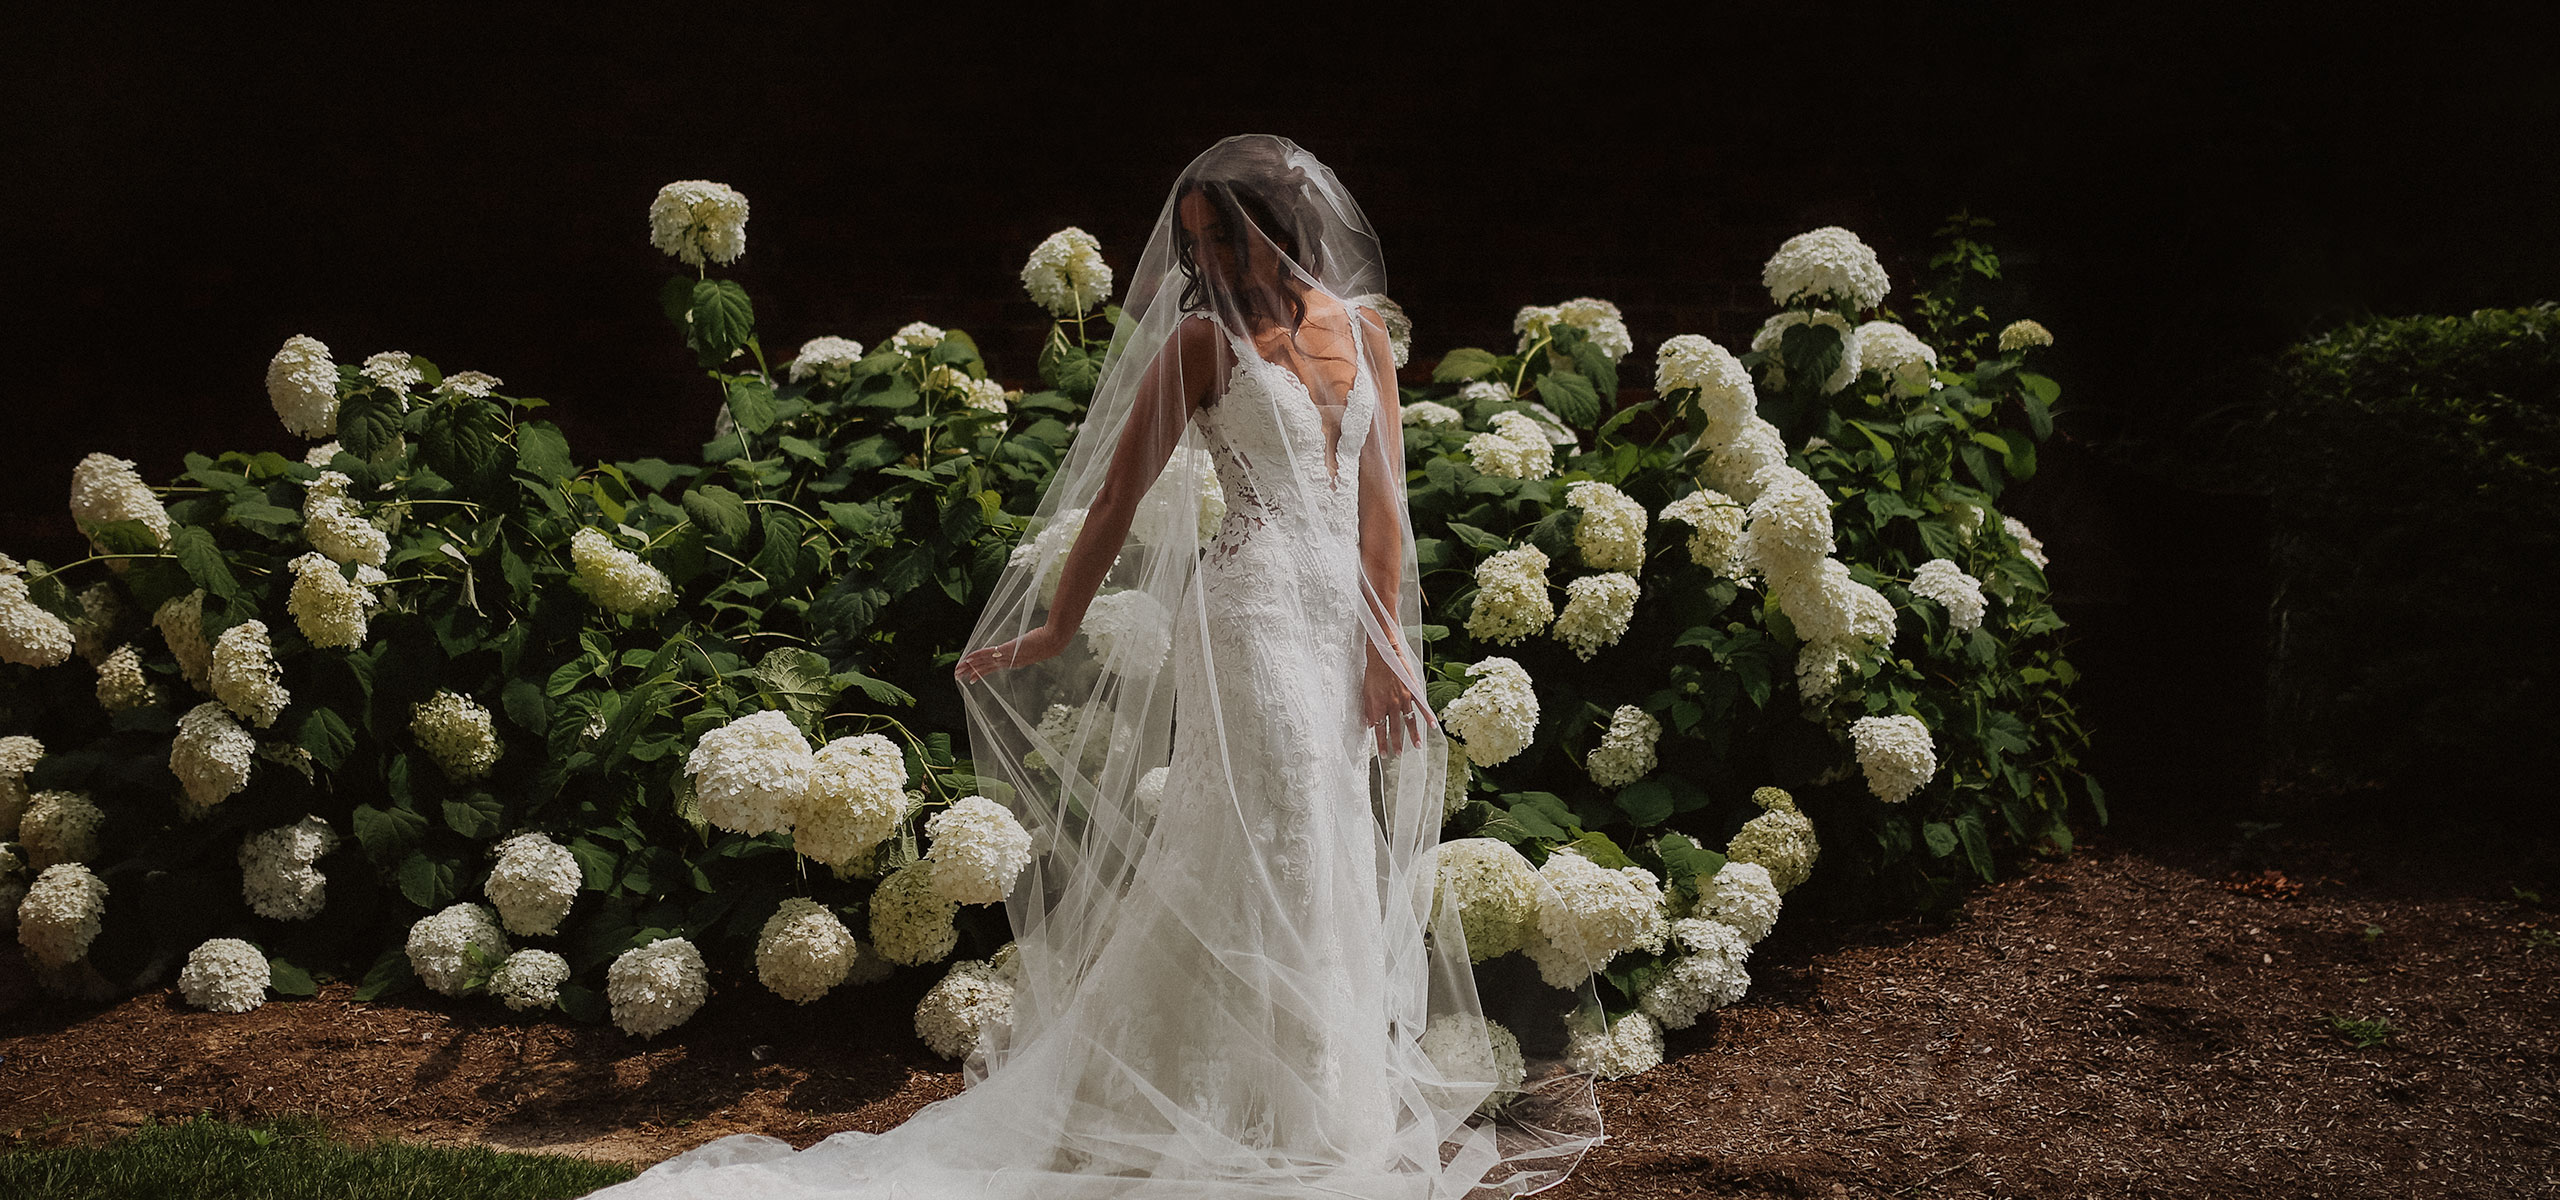 cincinnati pine croft bride in front of flowers